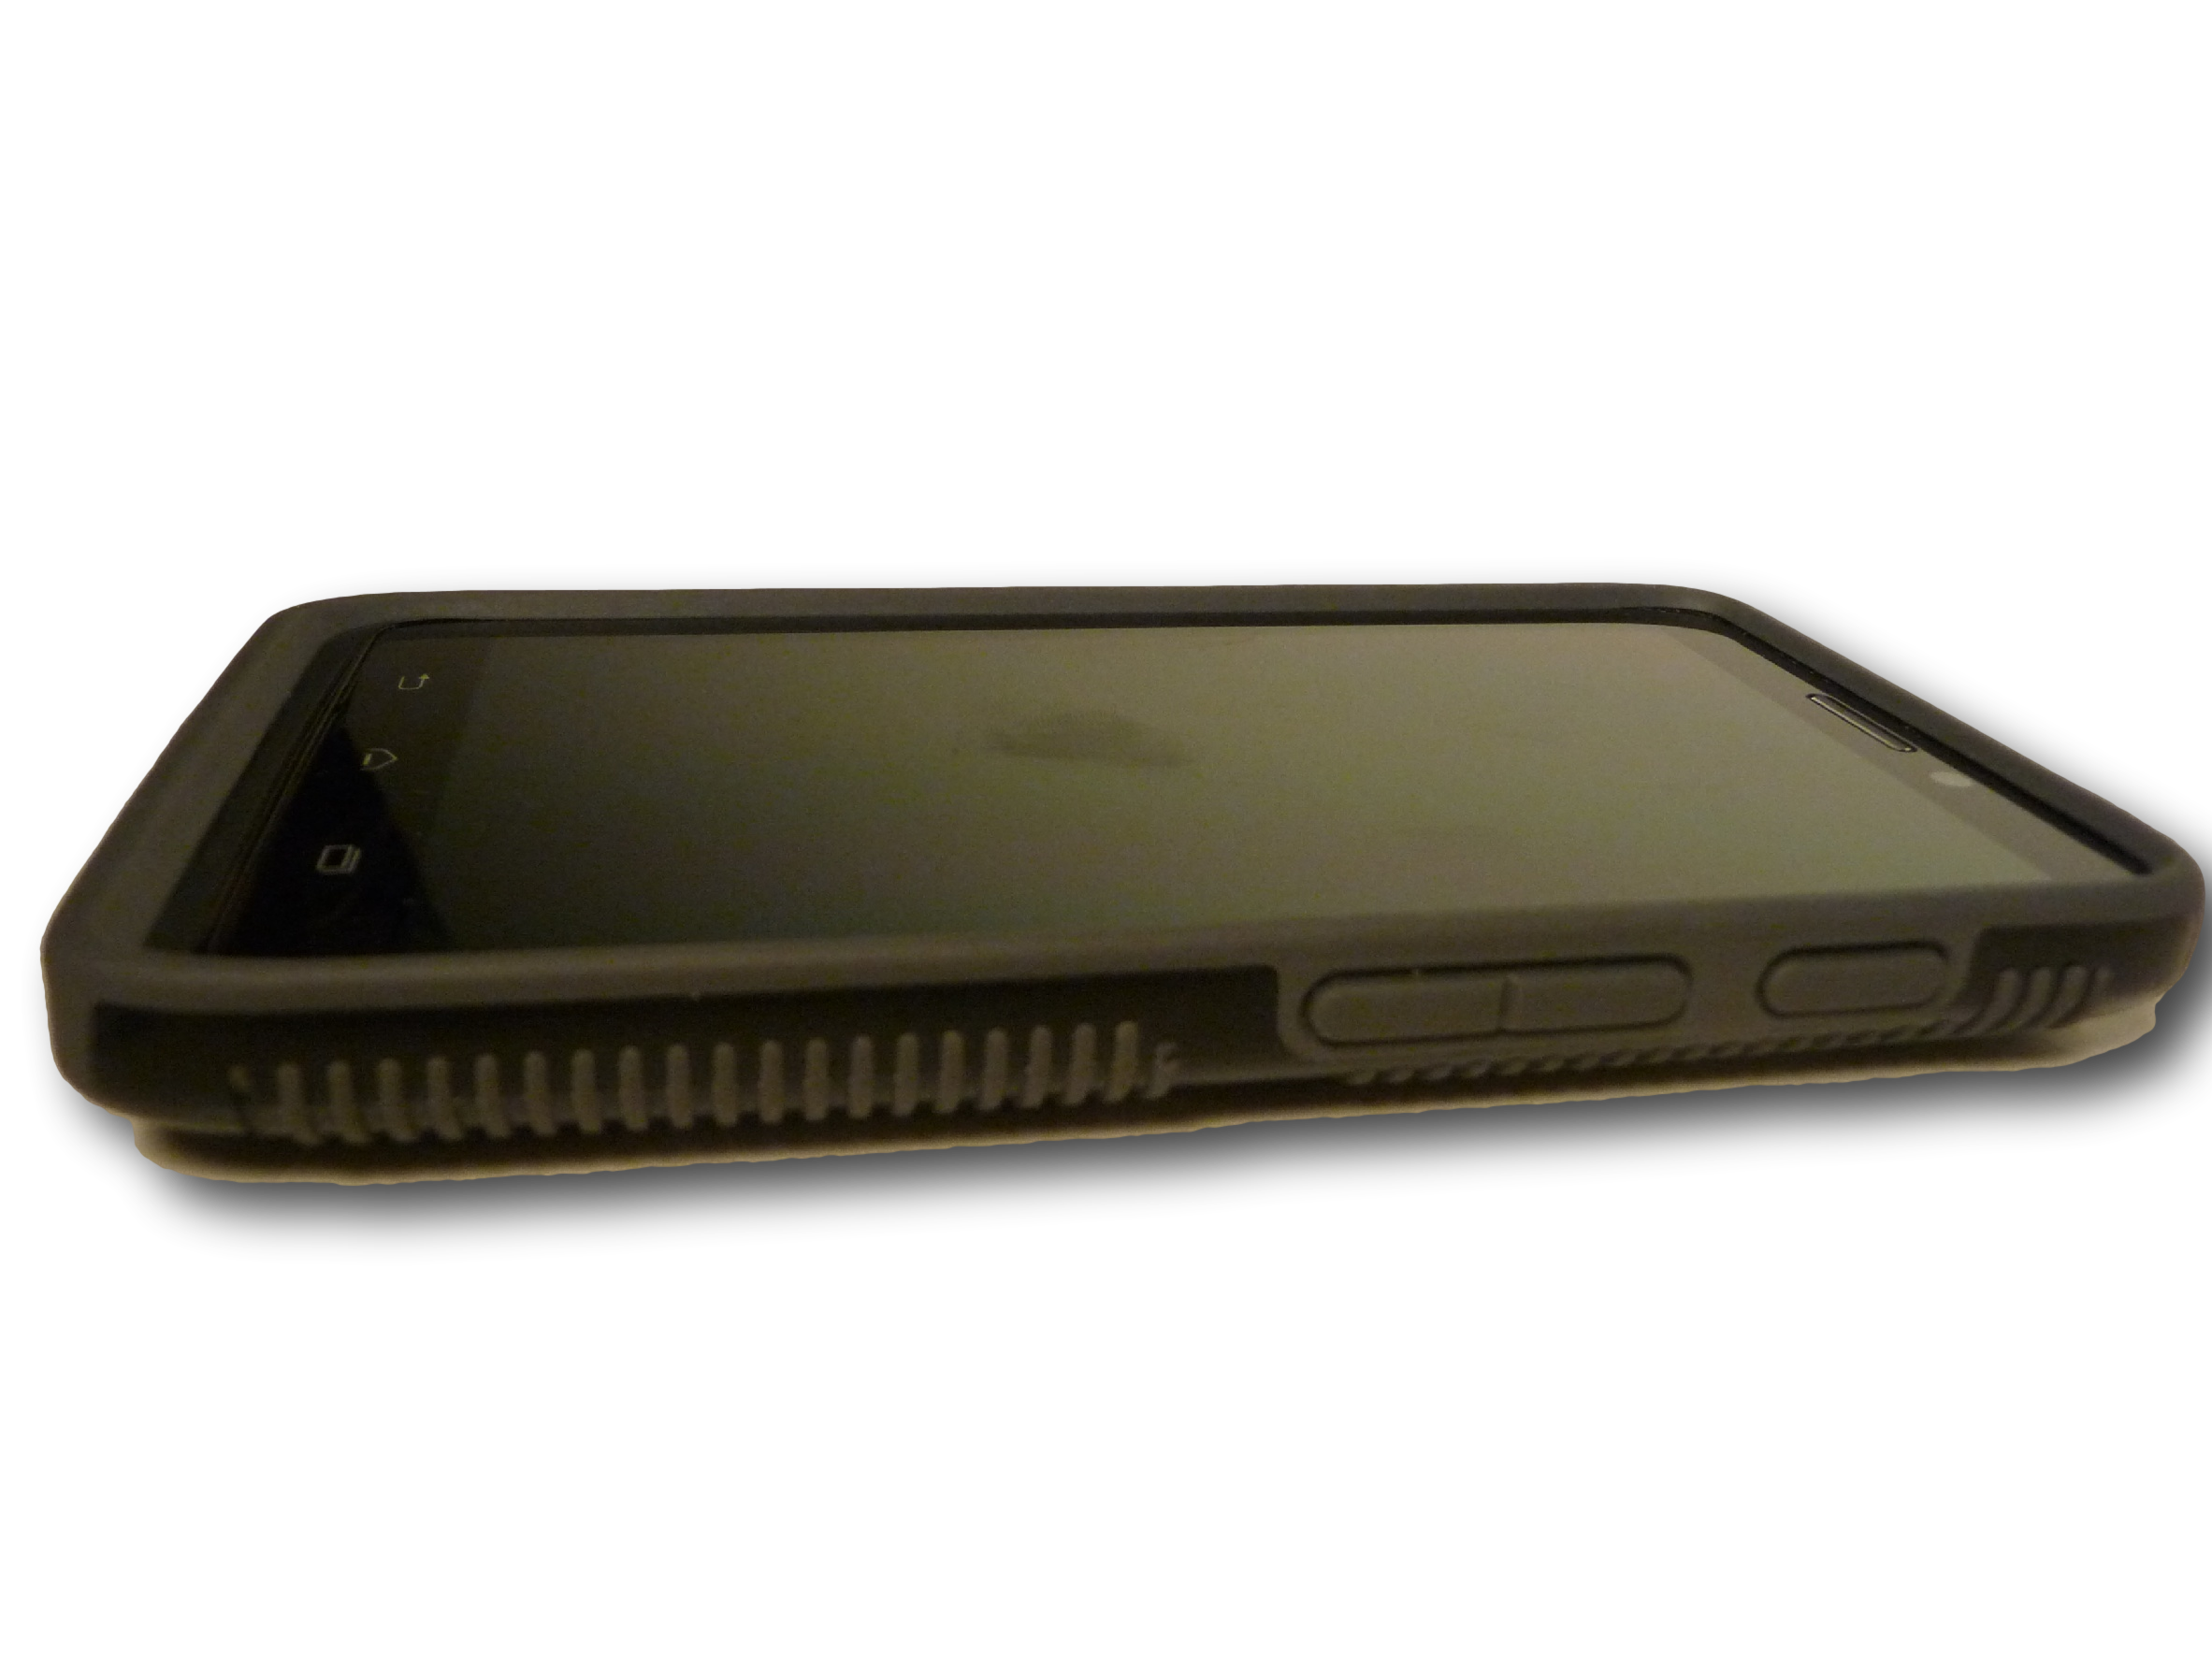 DroidMaxx Speck case side1 clipped rev 1 Best Smartphone: Droid Maxx   The Power To Get Things Done